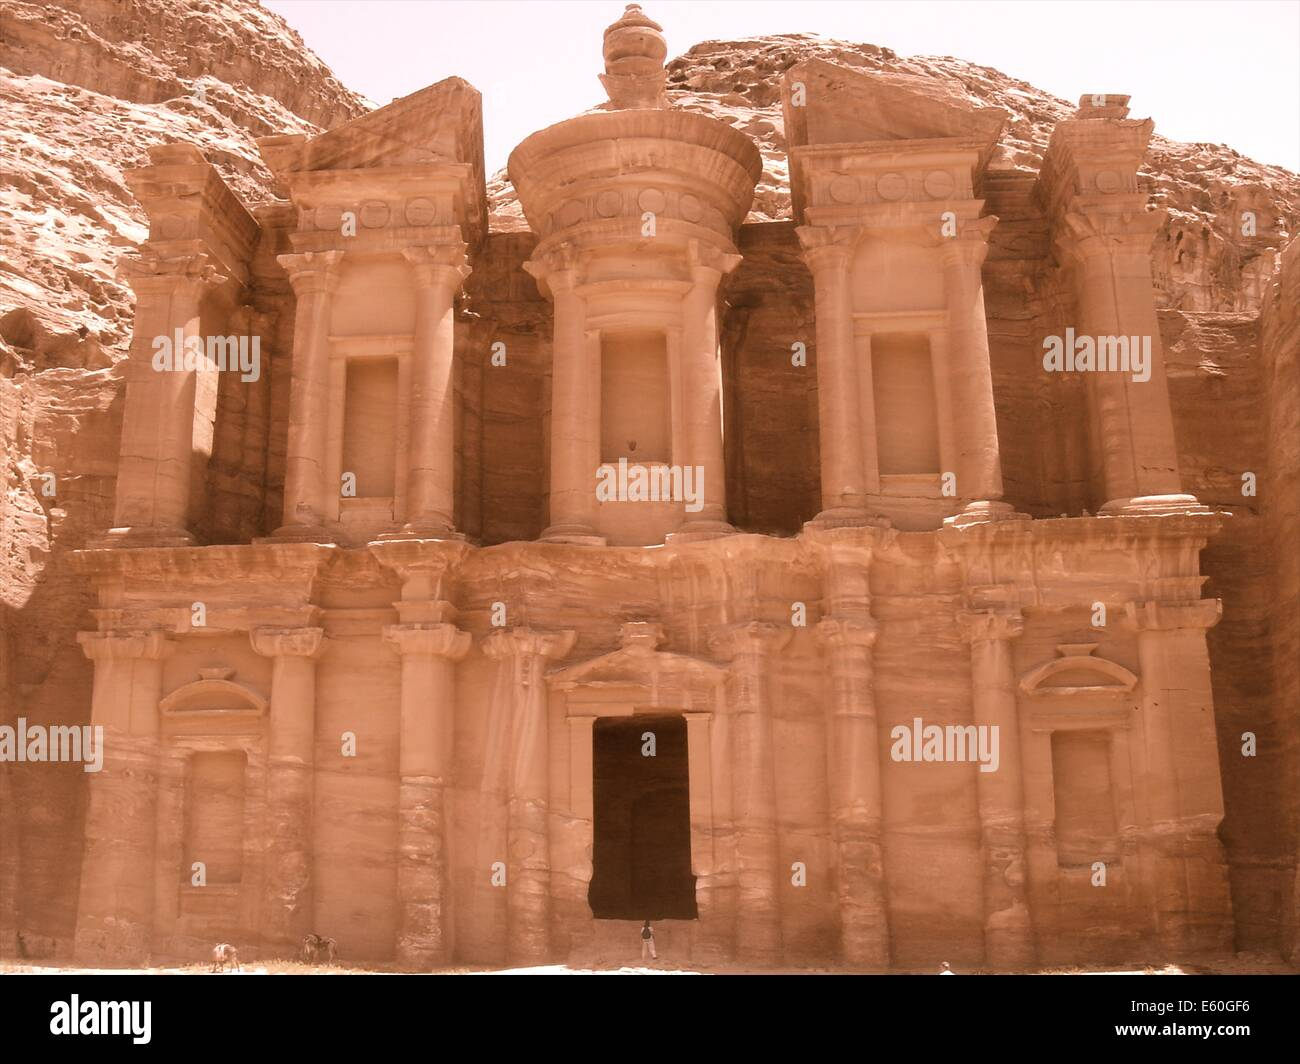 El Deir, The Monastery, at Petra, one of the new seven wonders of the world, in the deserts of Jordan - Stock Image